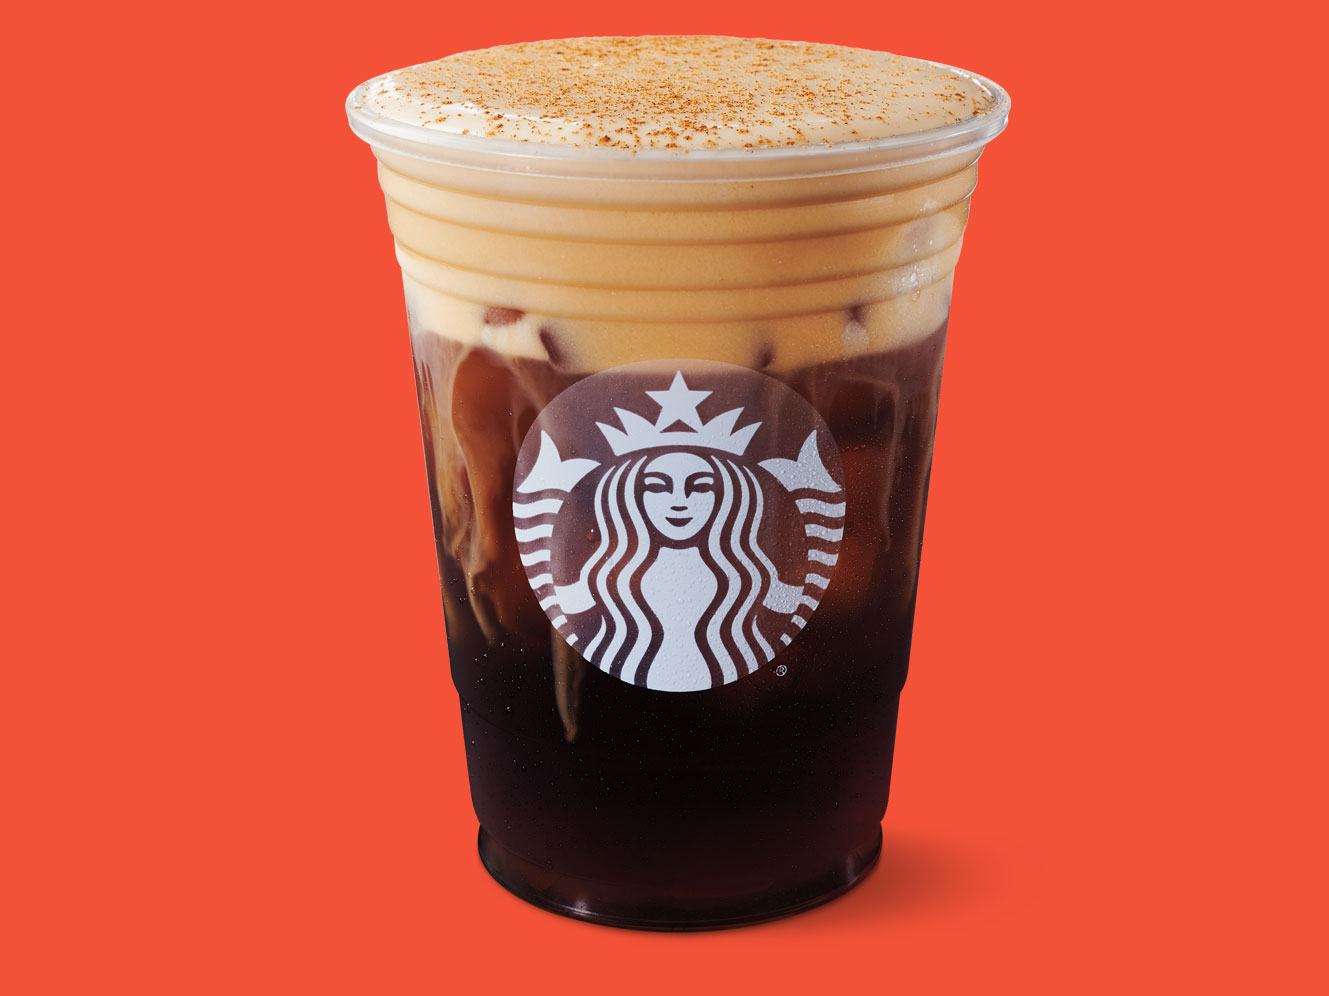 Starbucks Debuts First New Pumpkin Spice Drink Since the PSL